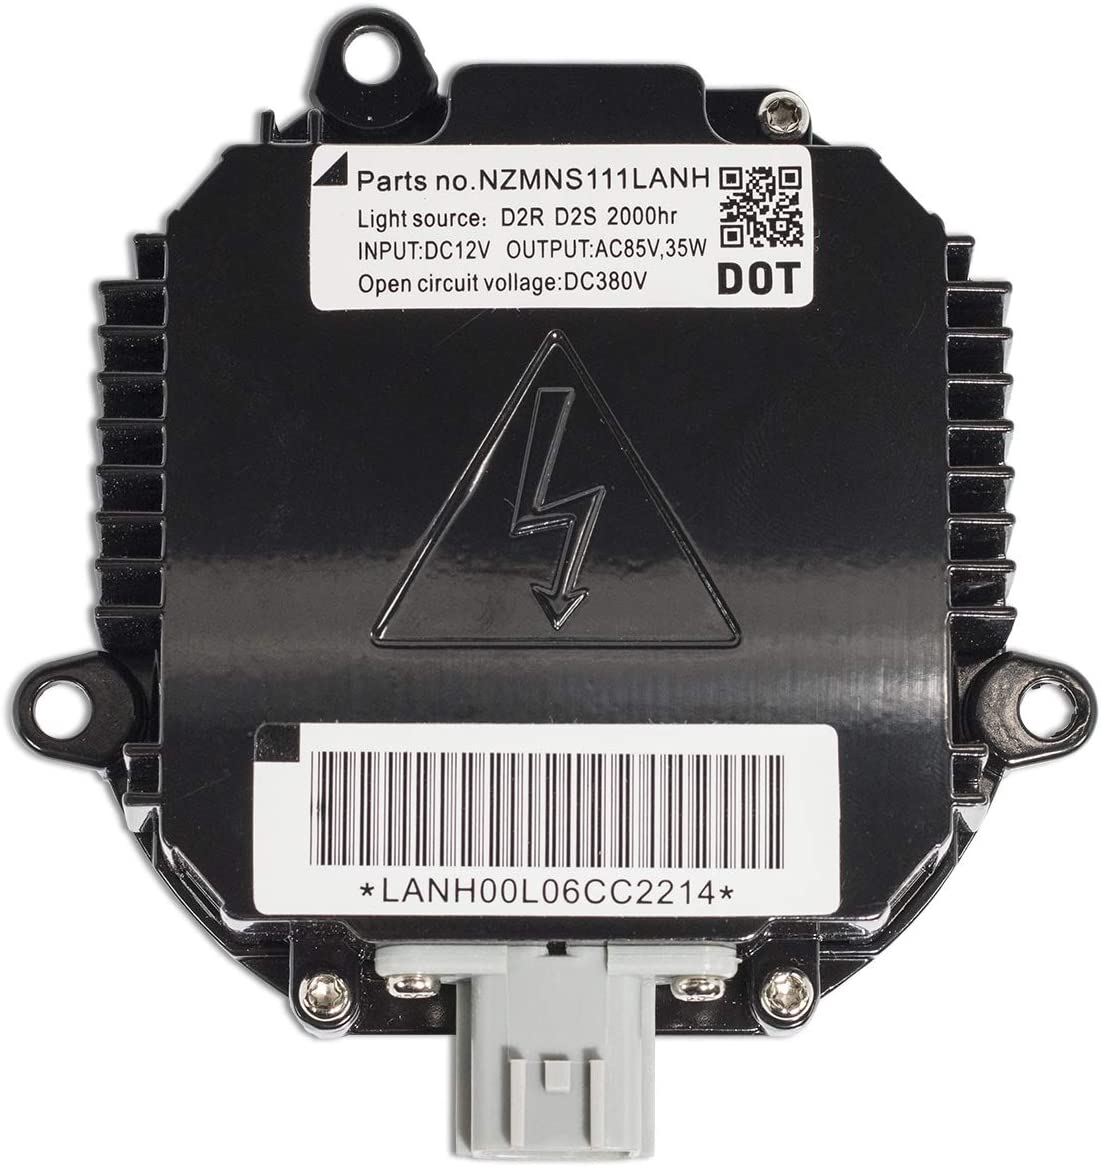 D2S//D2R - 2 Year Warranty Single - 1 PCS XtremeVision OEM Replacement Ballast Compatible with MATSUSHITA NZMNS111LBNA Xenon HID Ballast